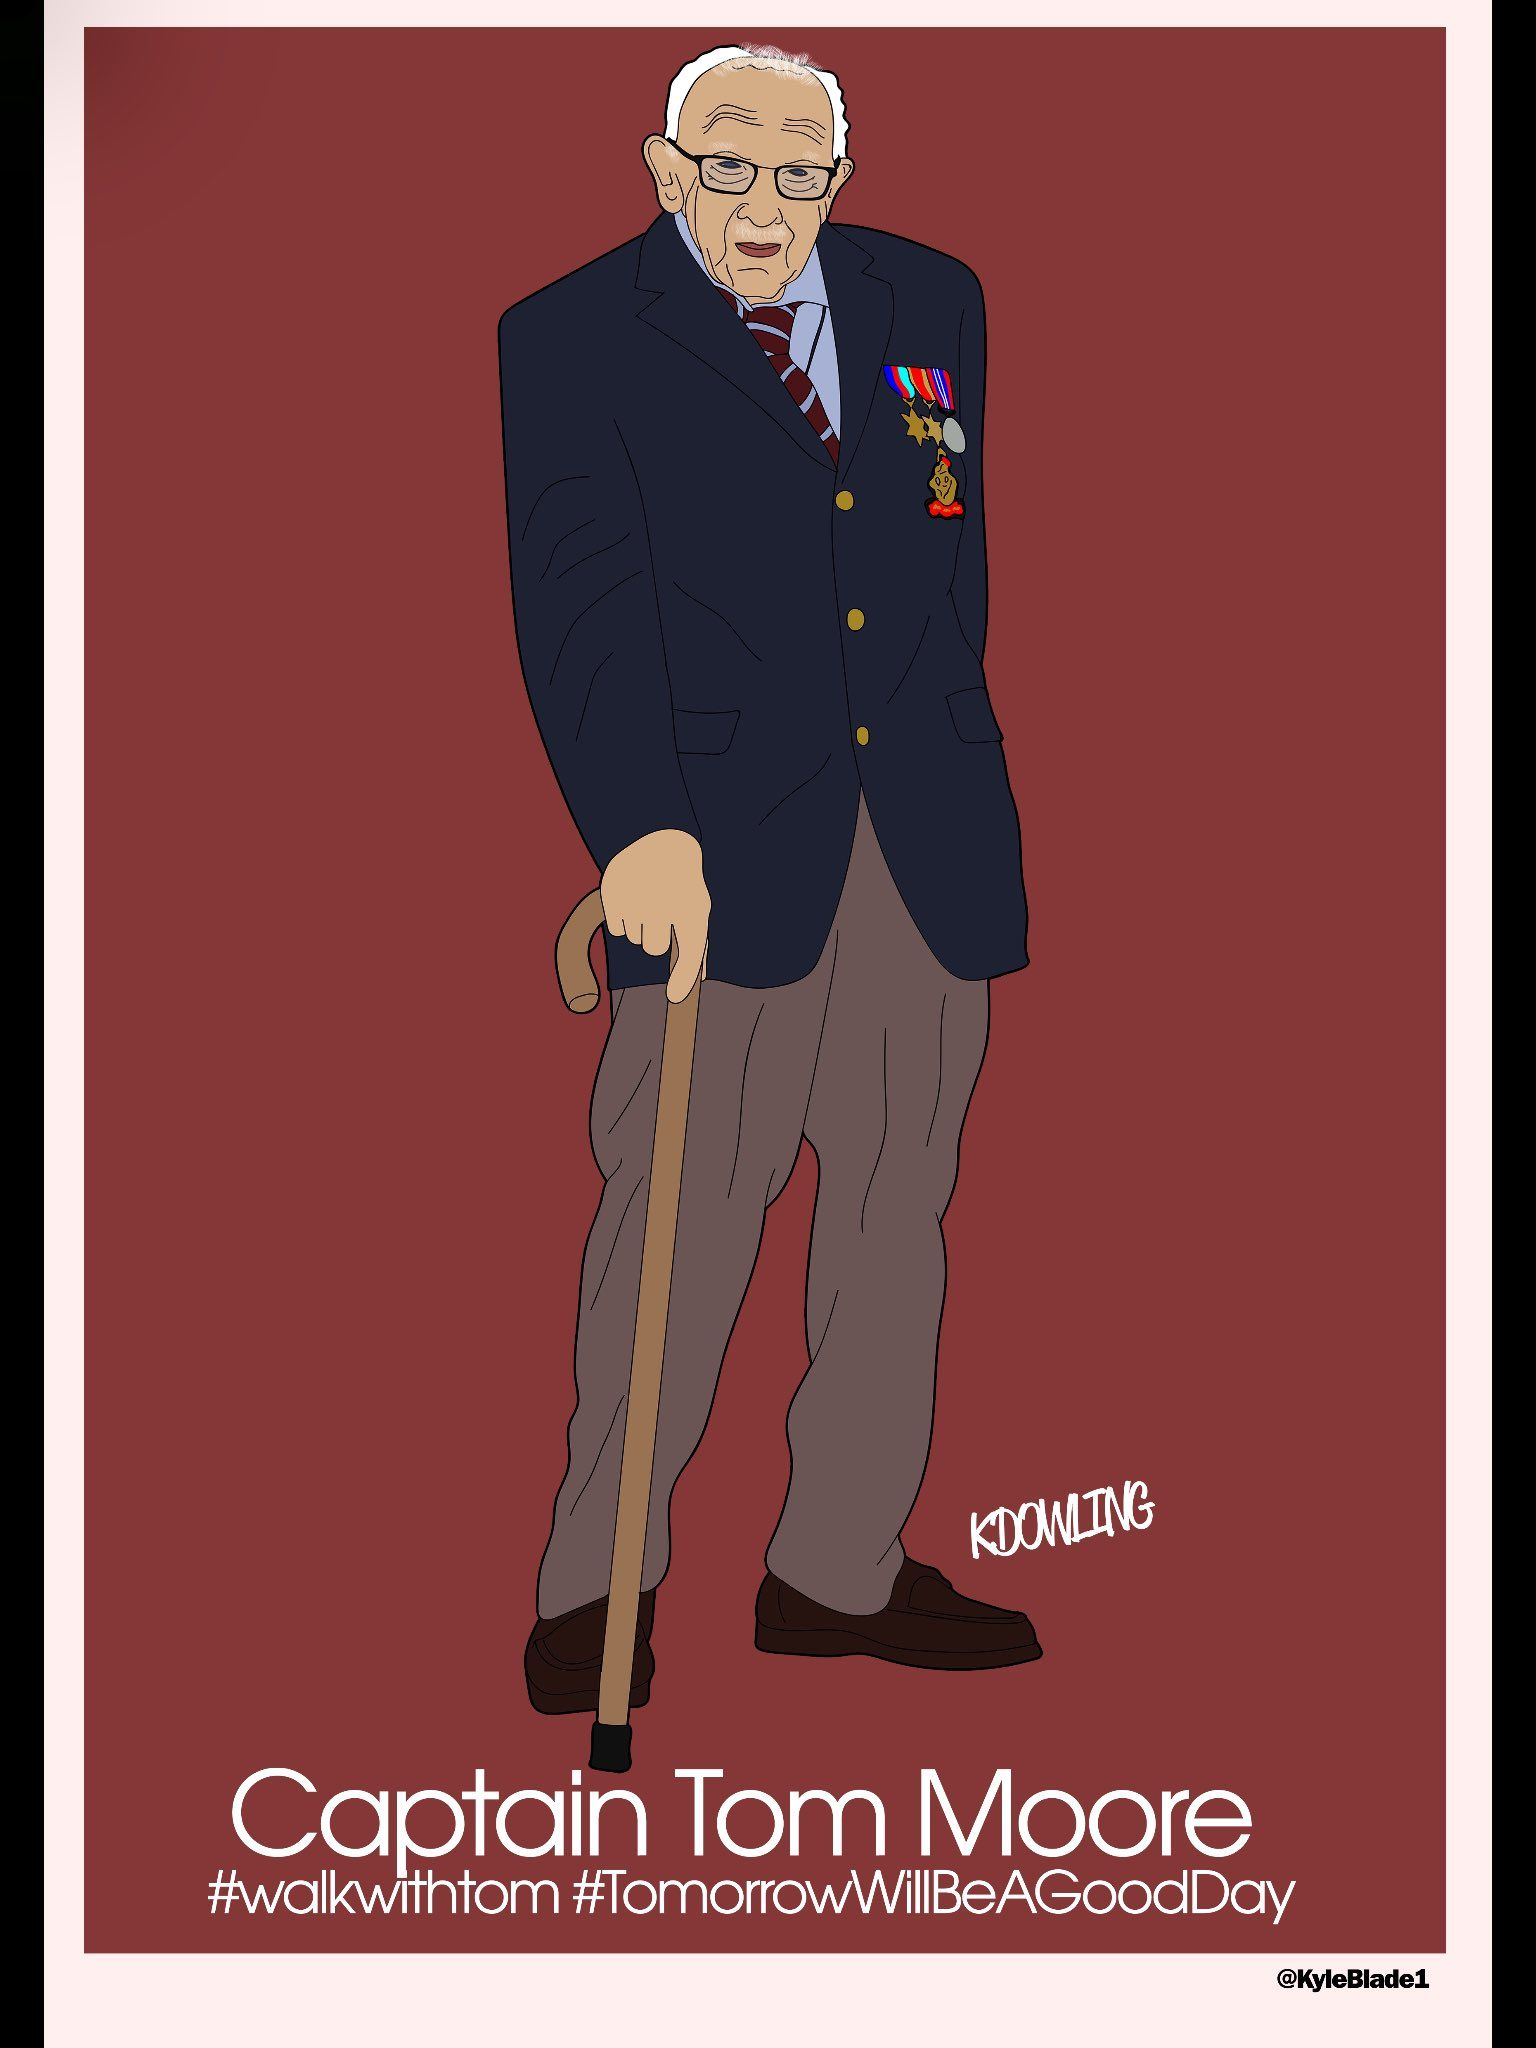 Kyle Dowling's graphic of Capt Tom Moore